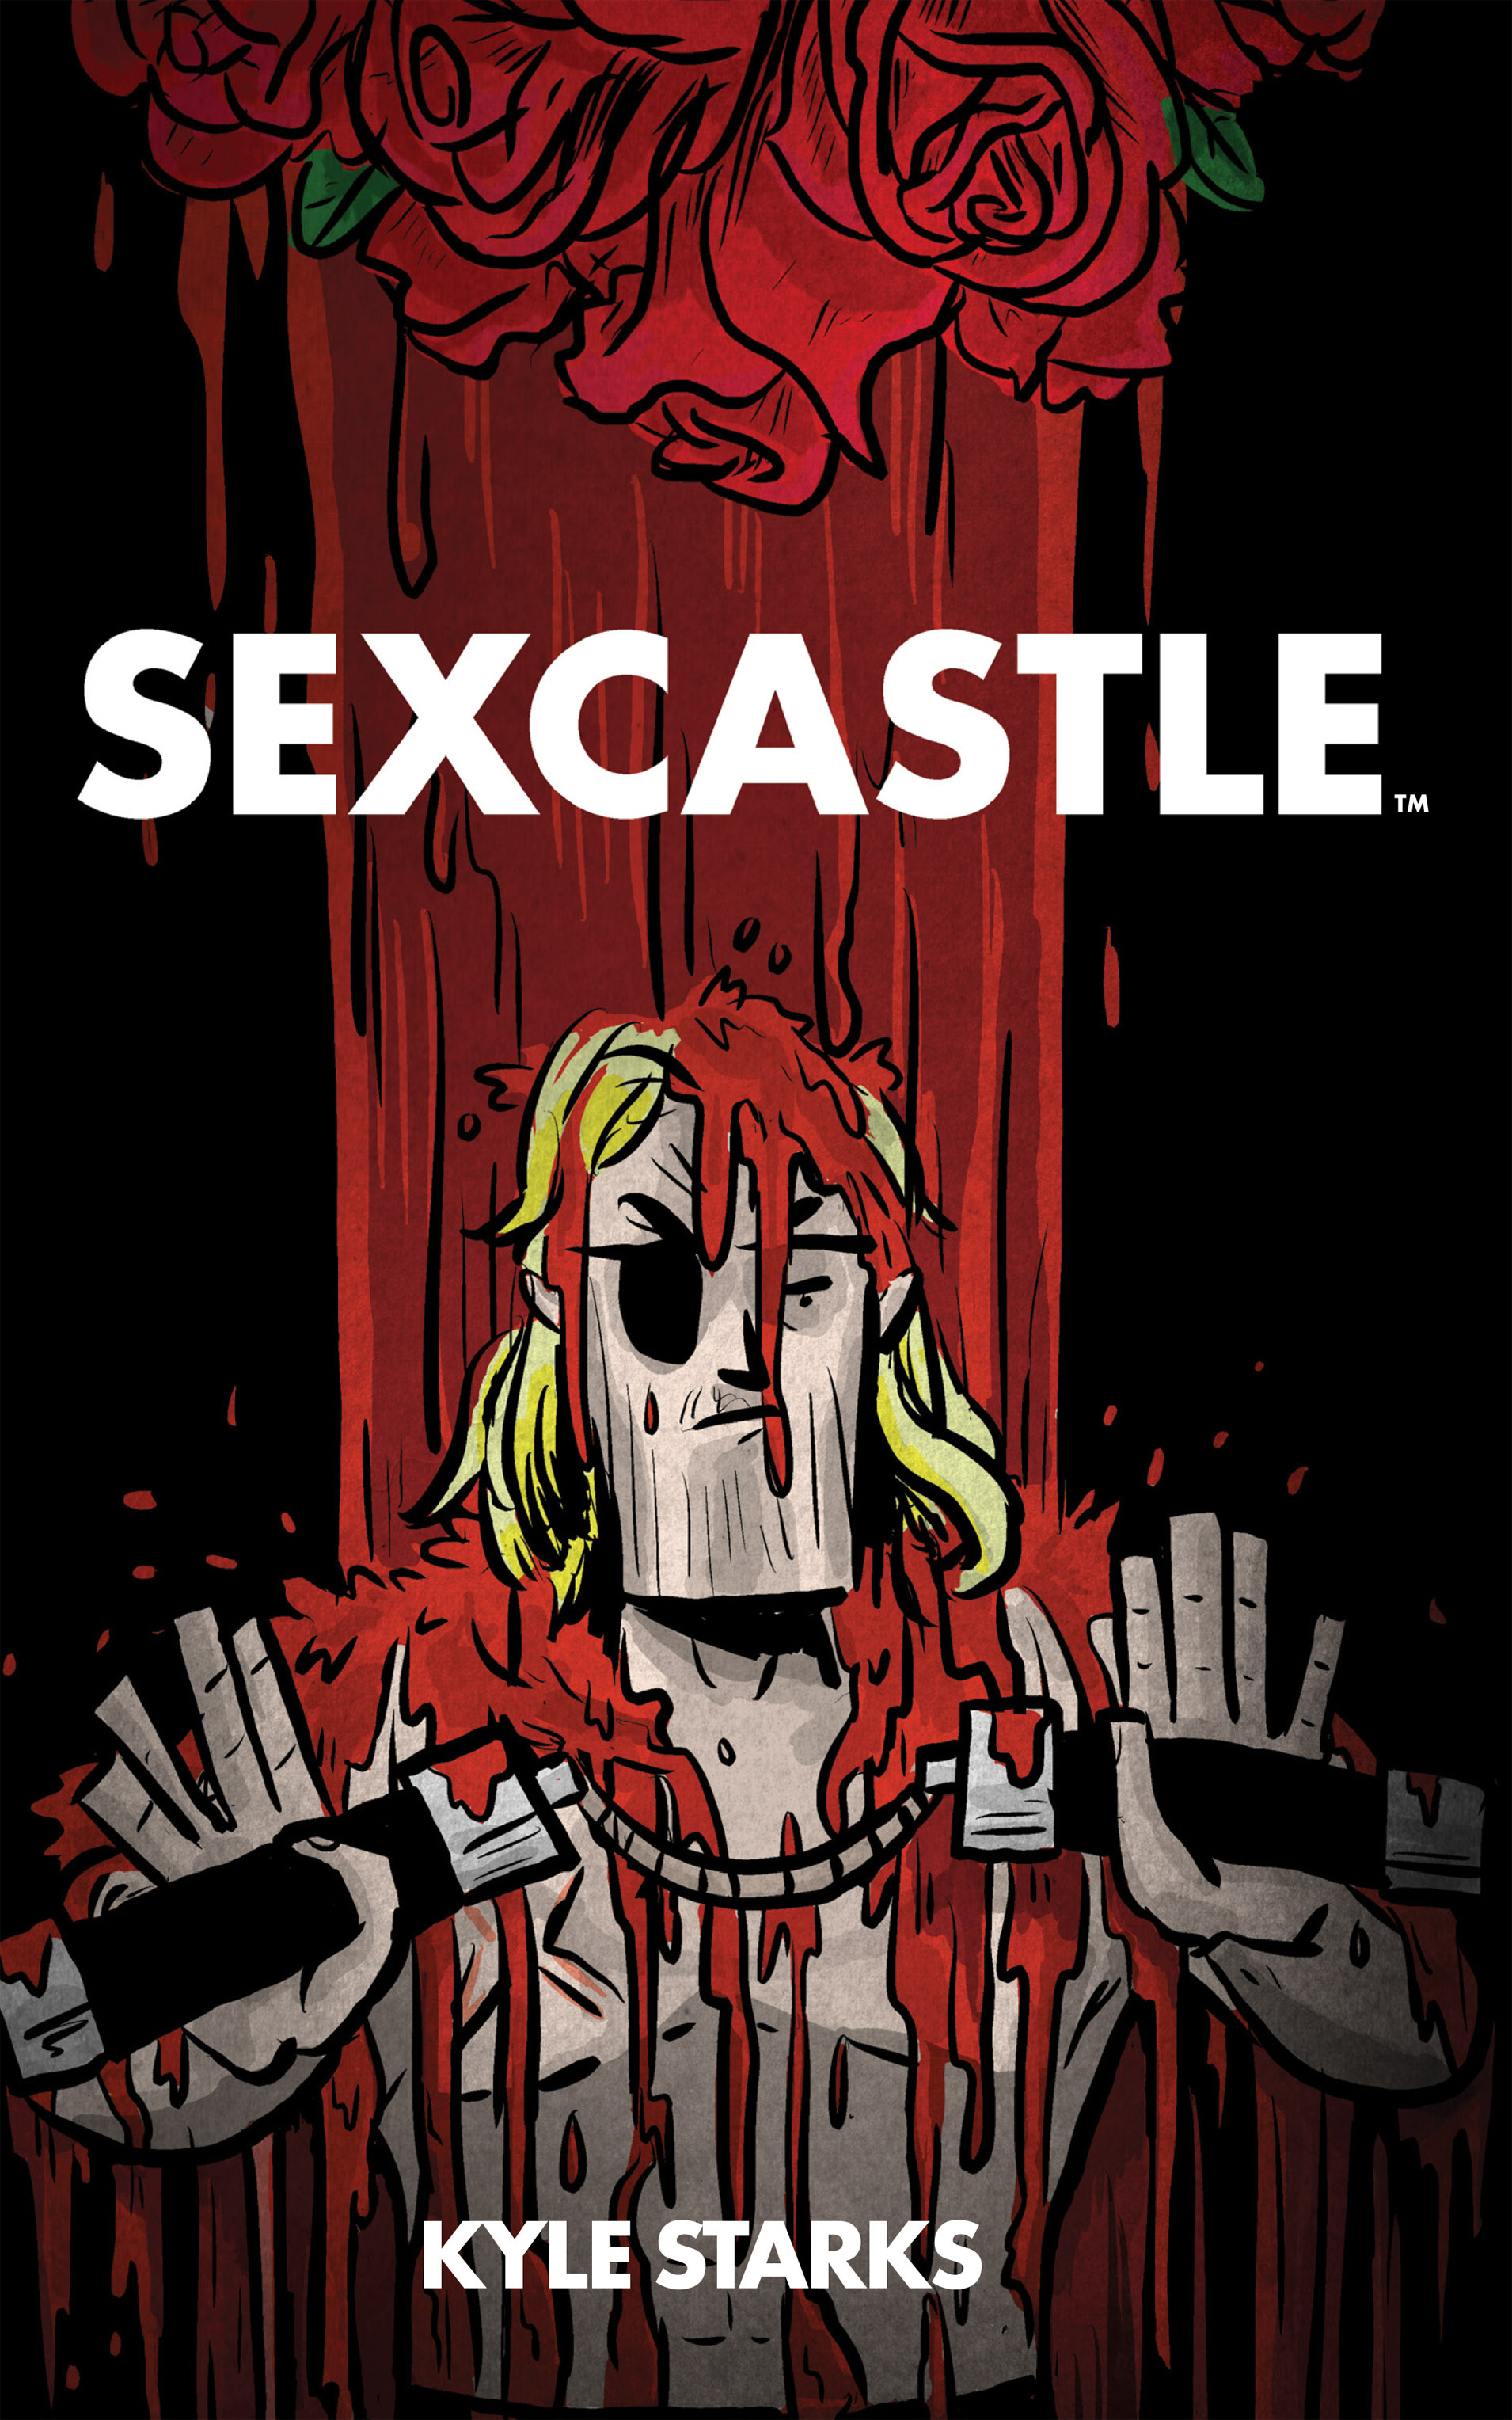 Read online Sexcastle comic -  Issue # Full - 1